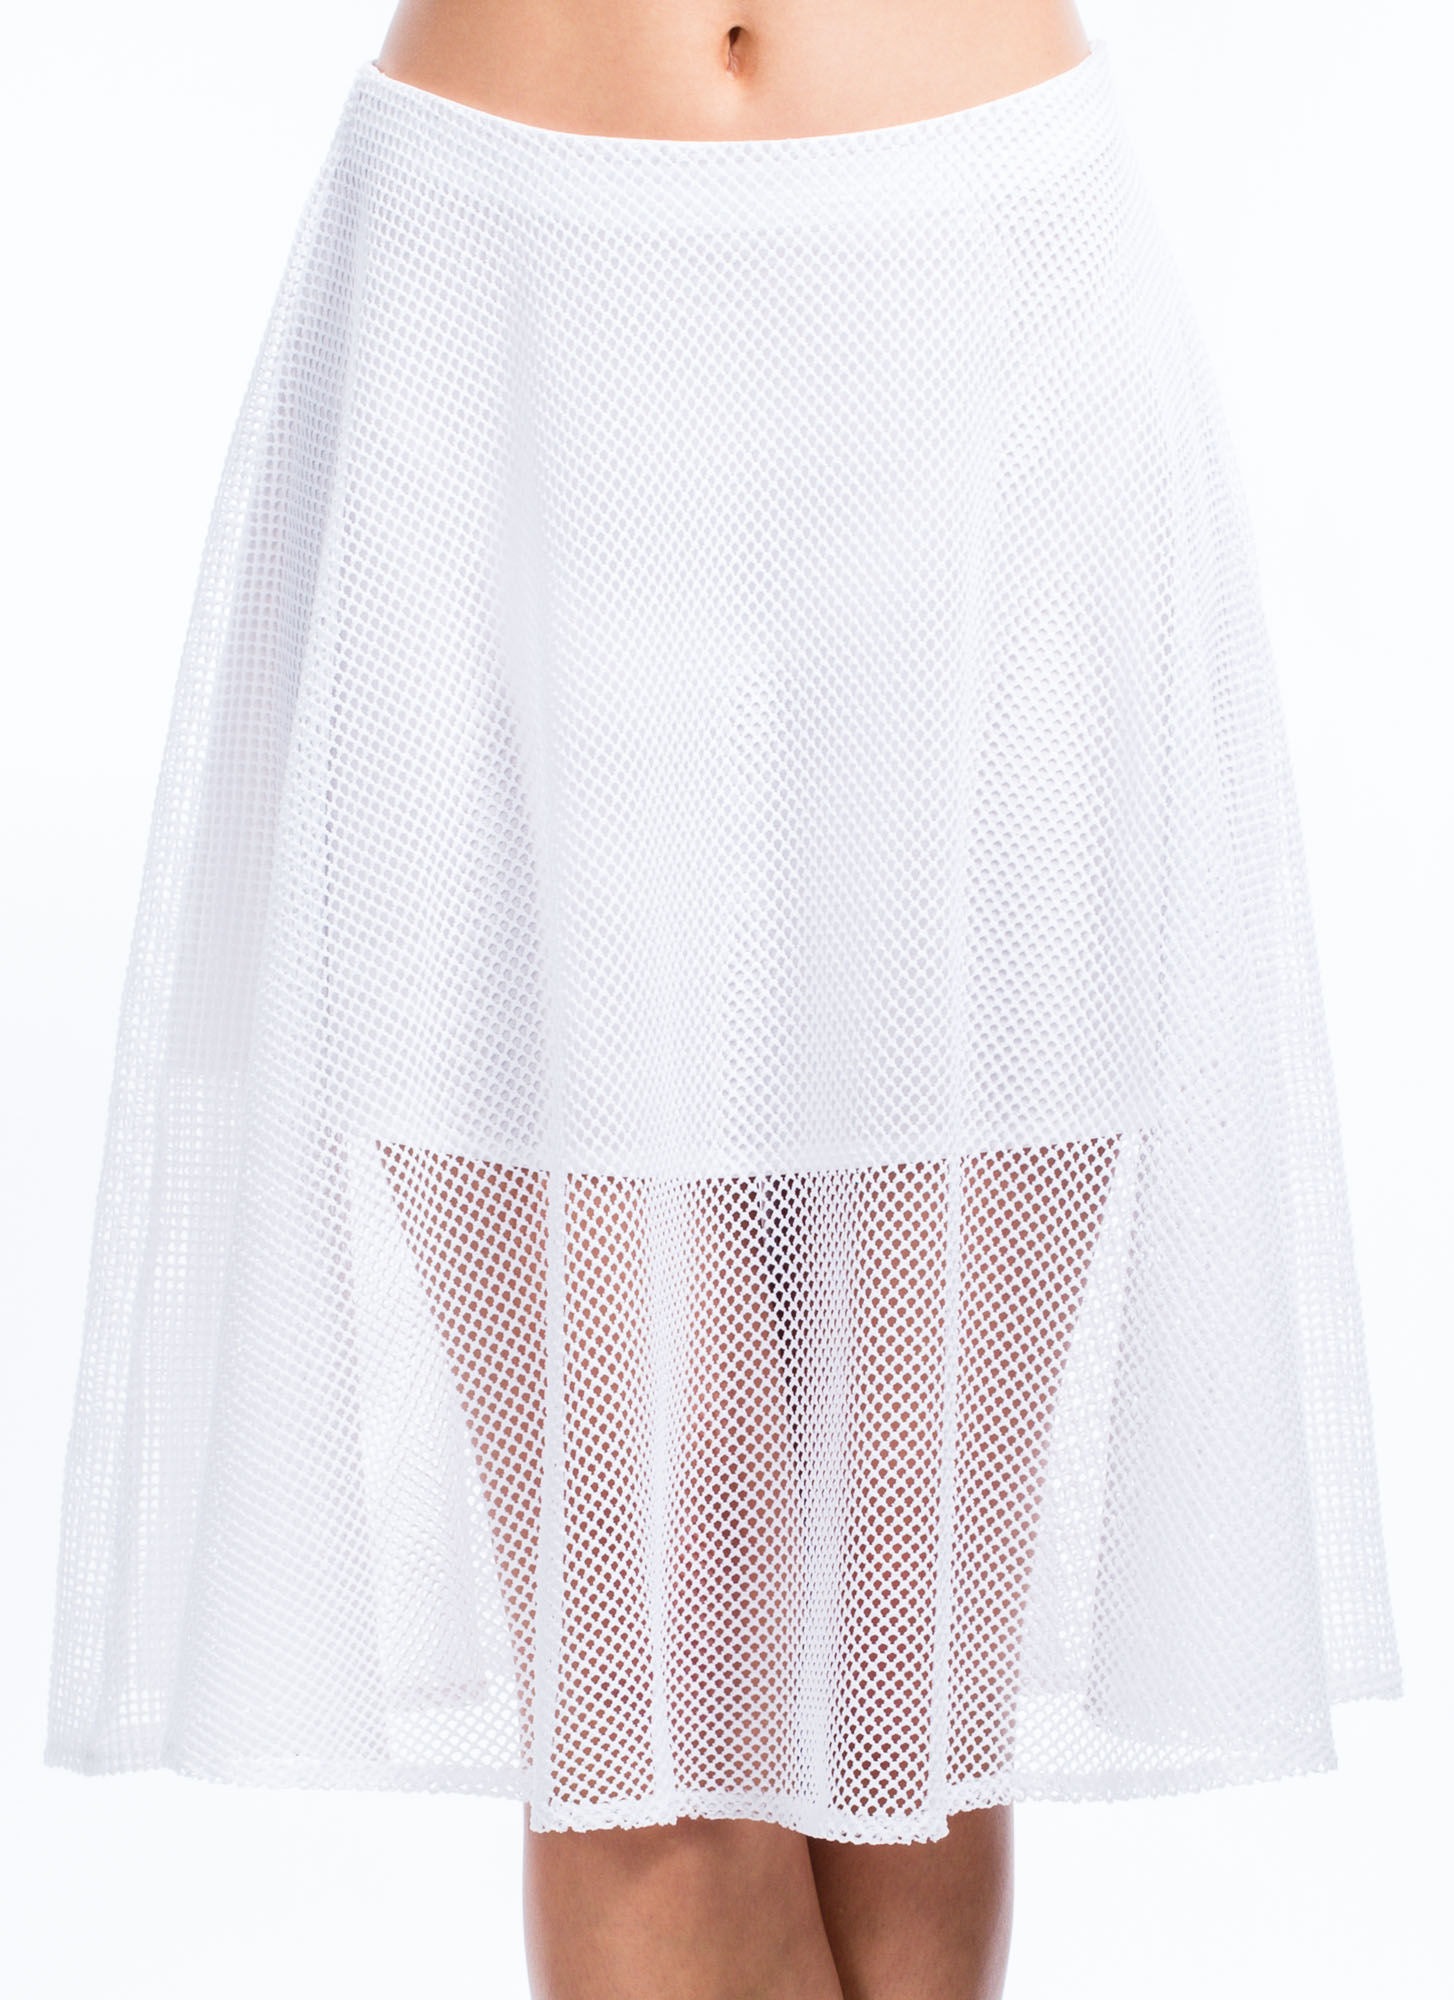 Net To Pay A-Line Skirt WHITE